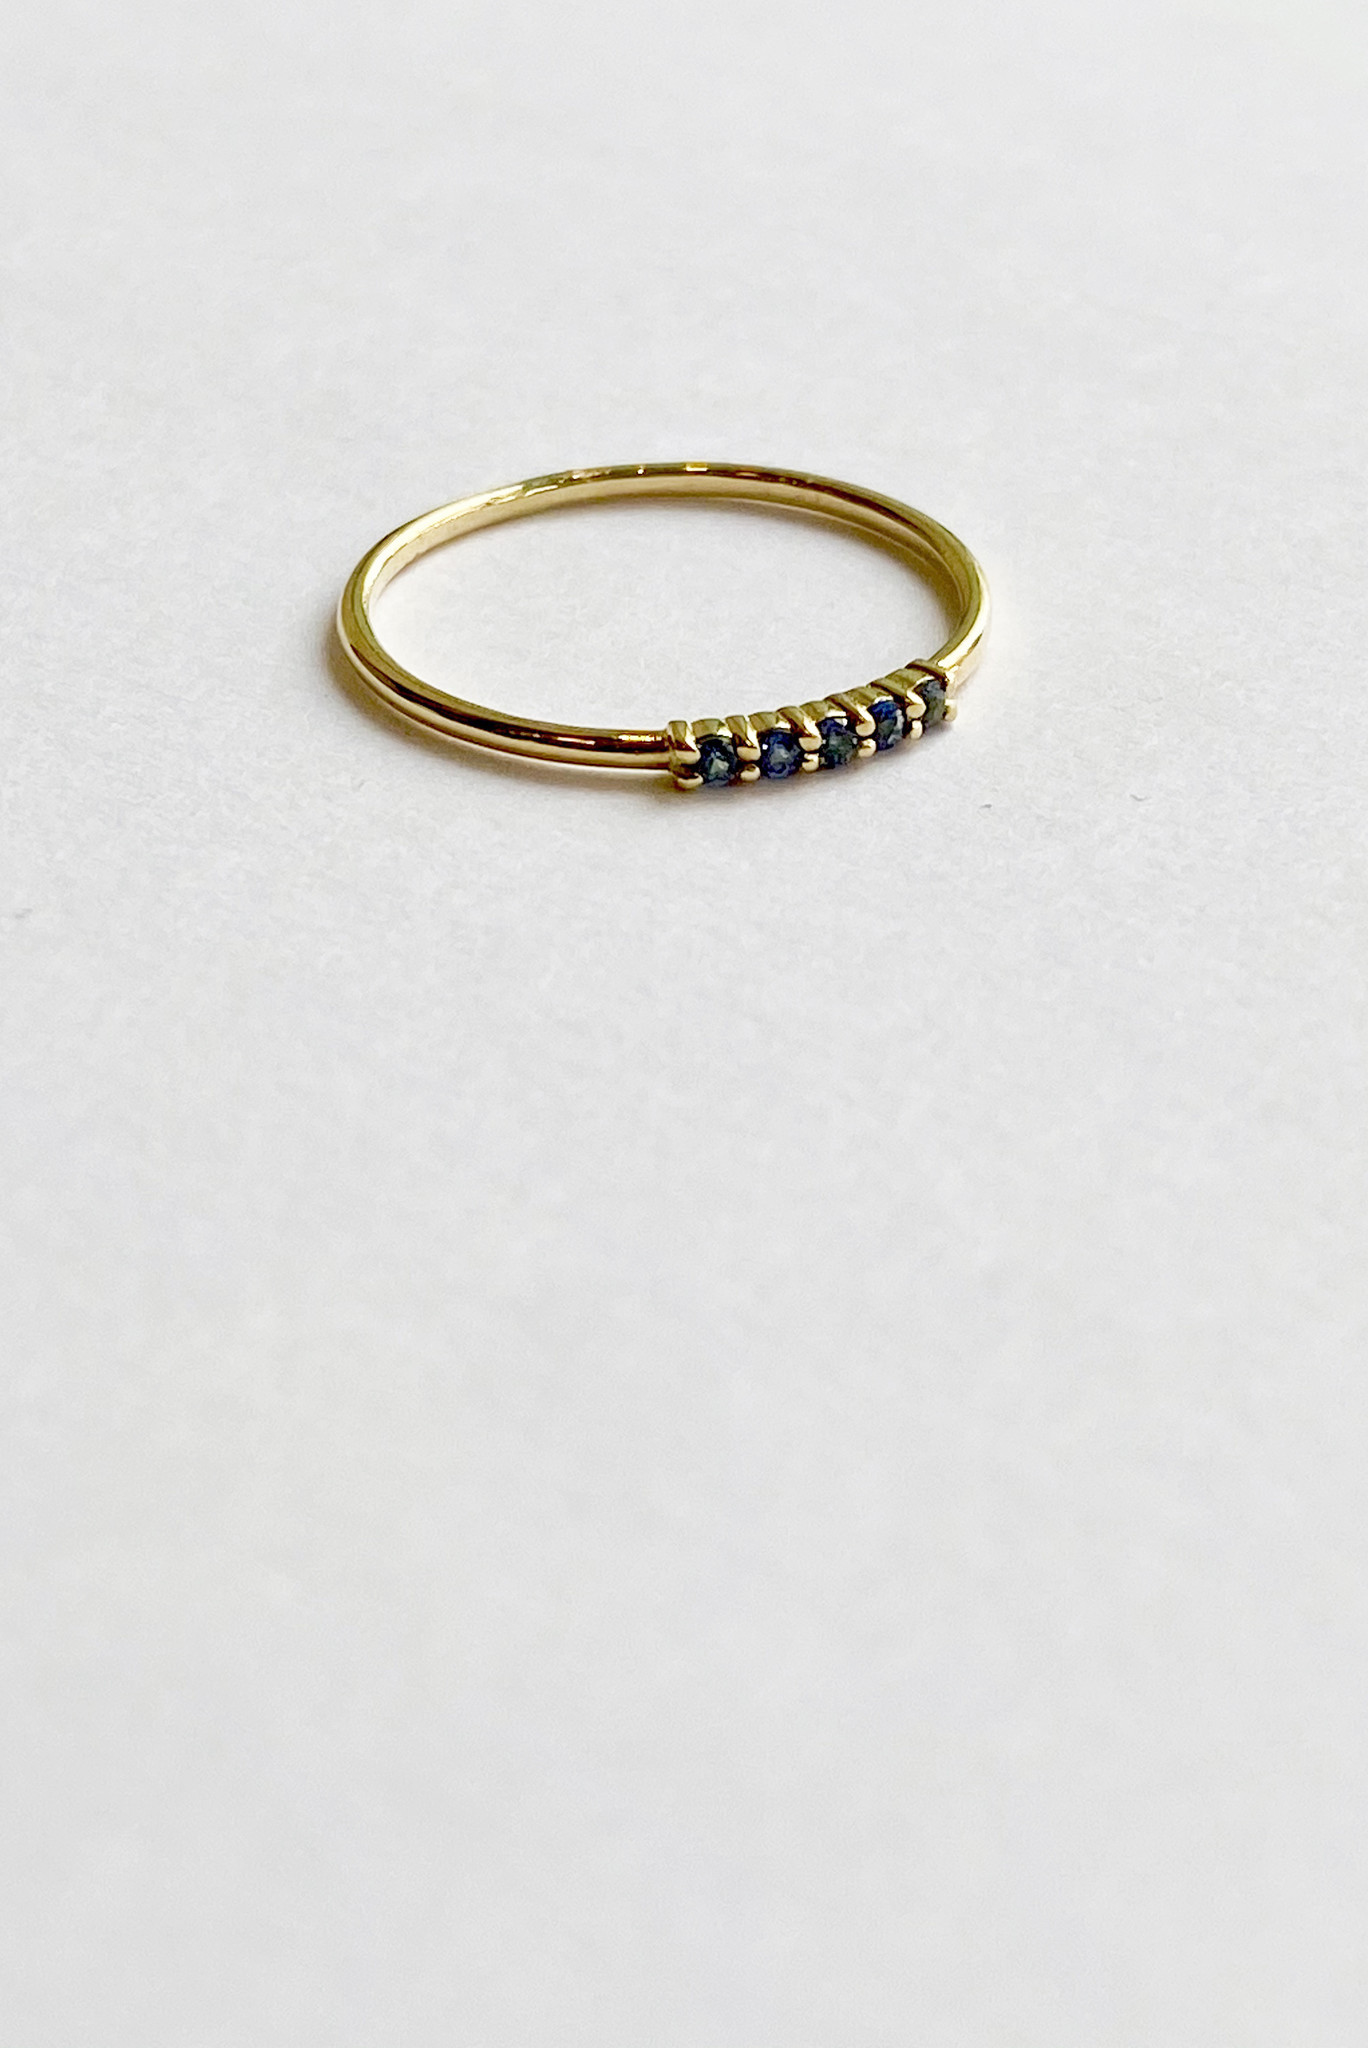 Constellation Blue Sapphire Ring 18kt Gold